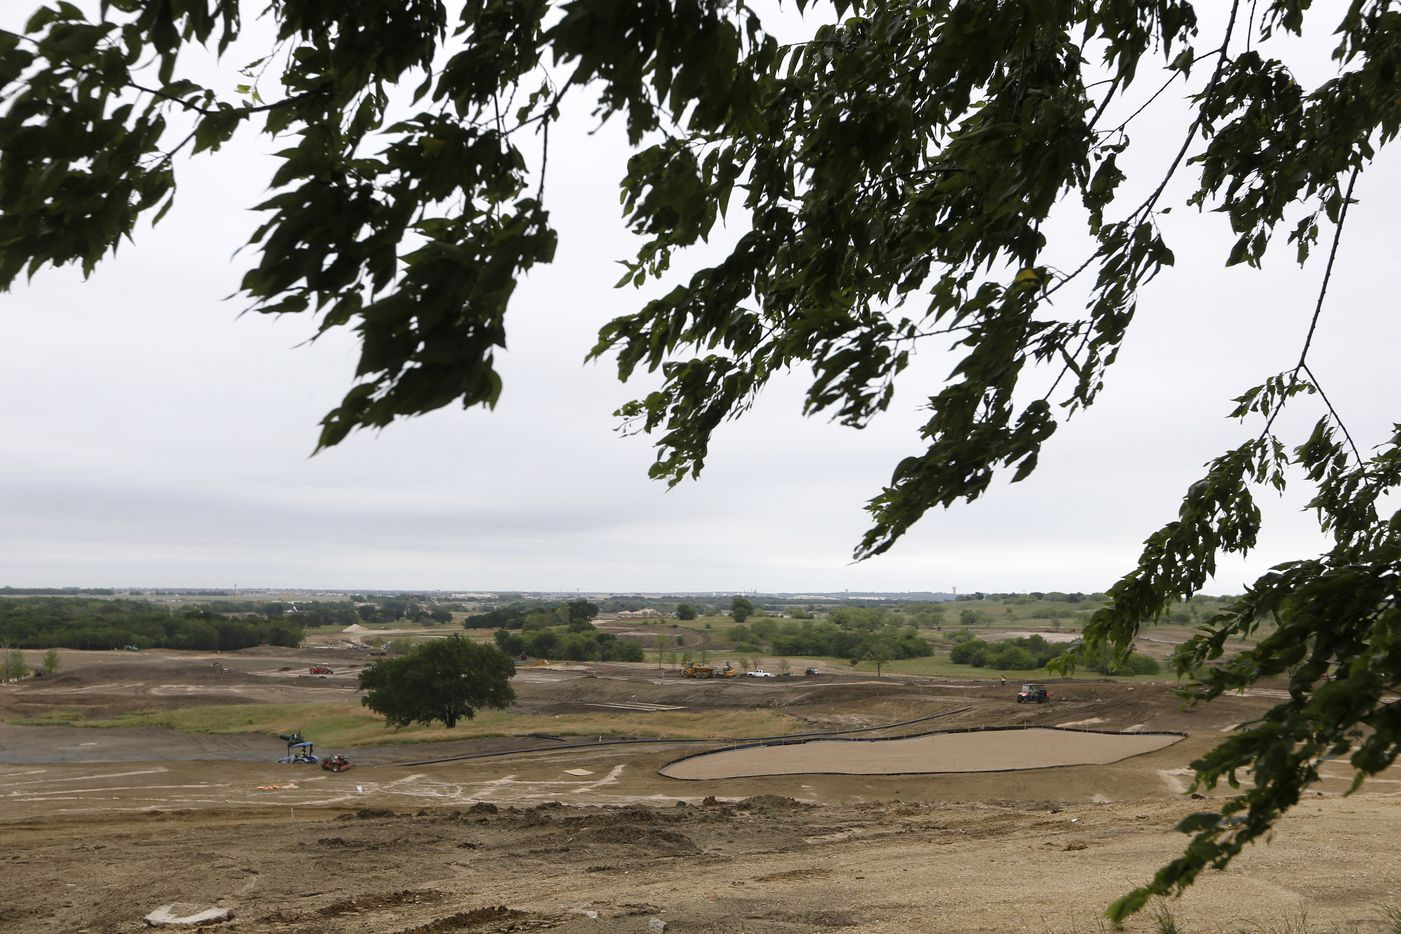 View of PGA Frisco in Frisco, Texas, on Wednesday, May 20, 2020. The $520 million project is a mixed-use development that will be home to the PGA of America headquarters and two championship golf courses.